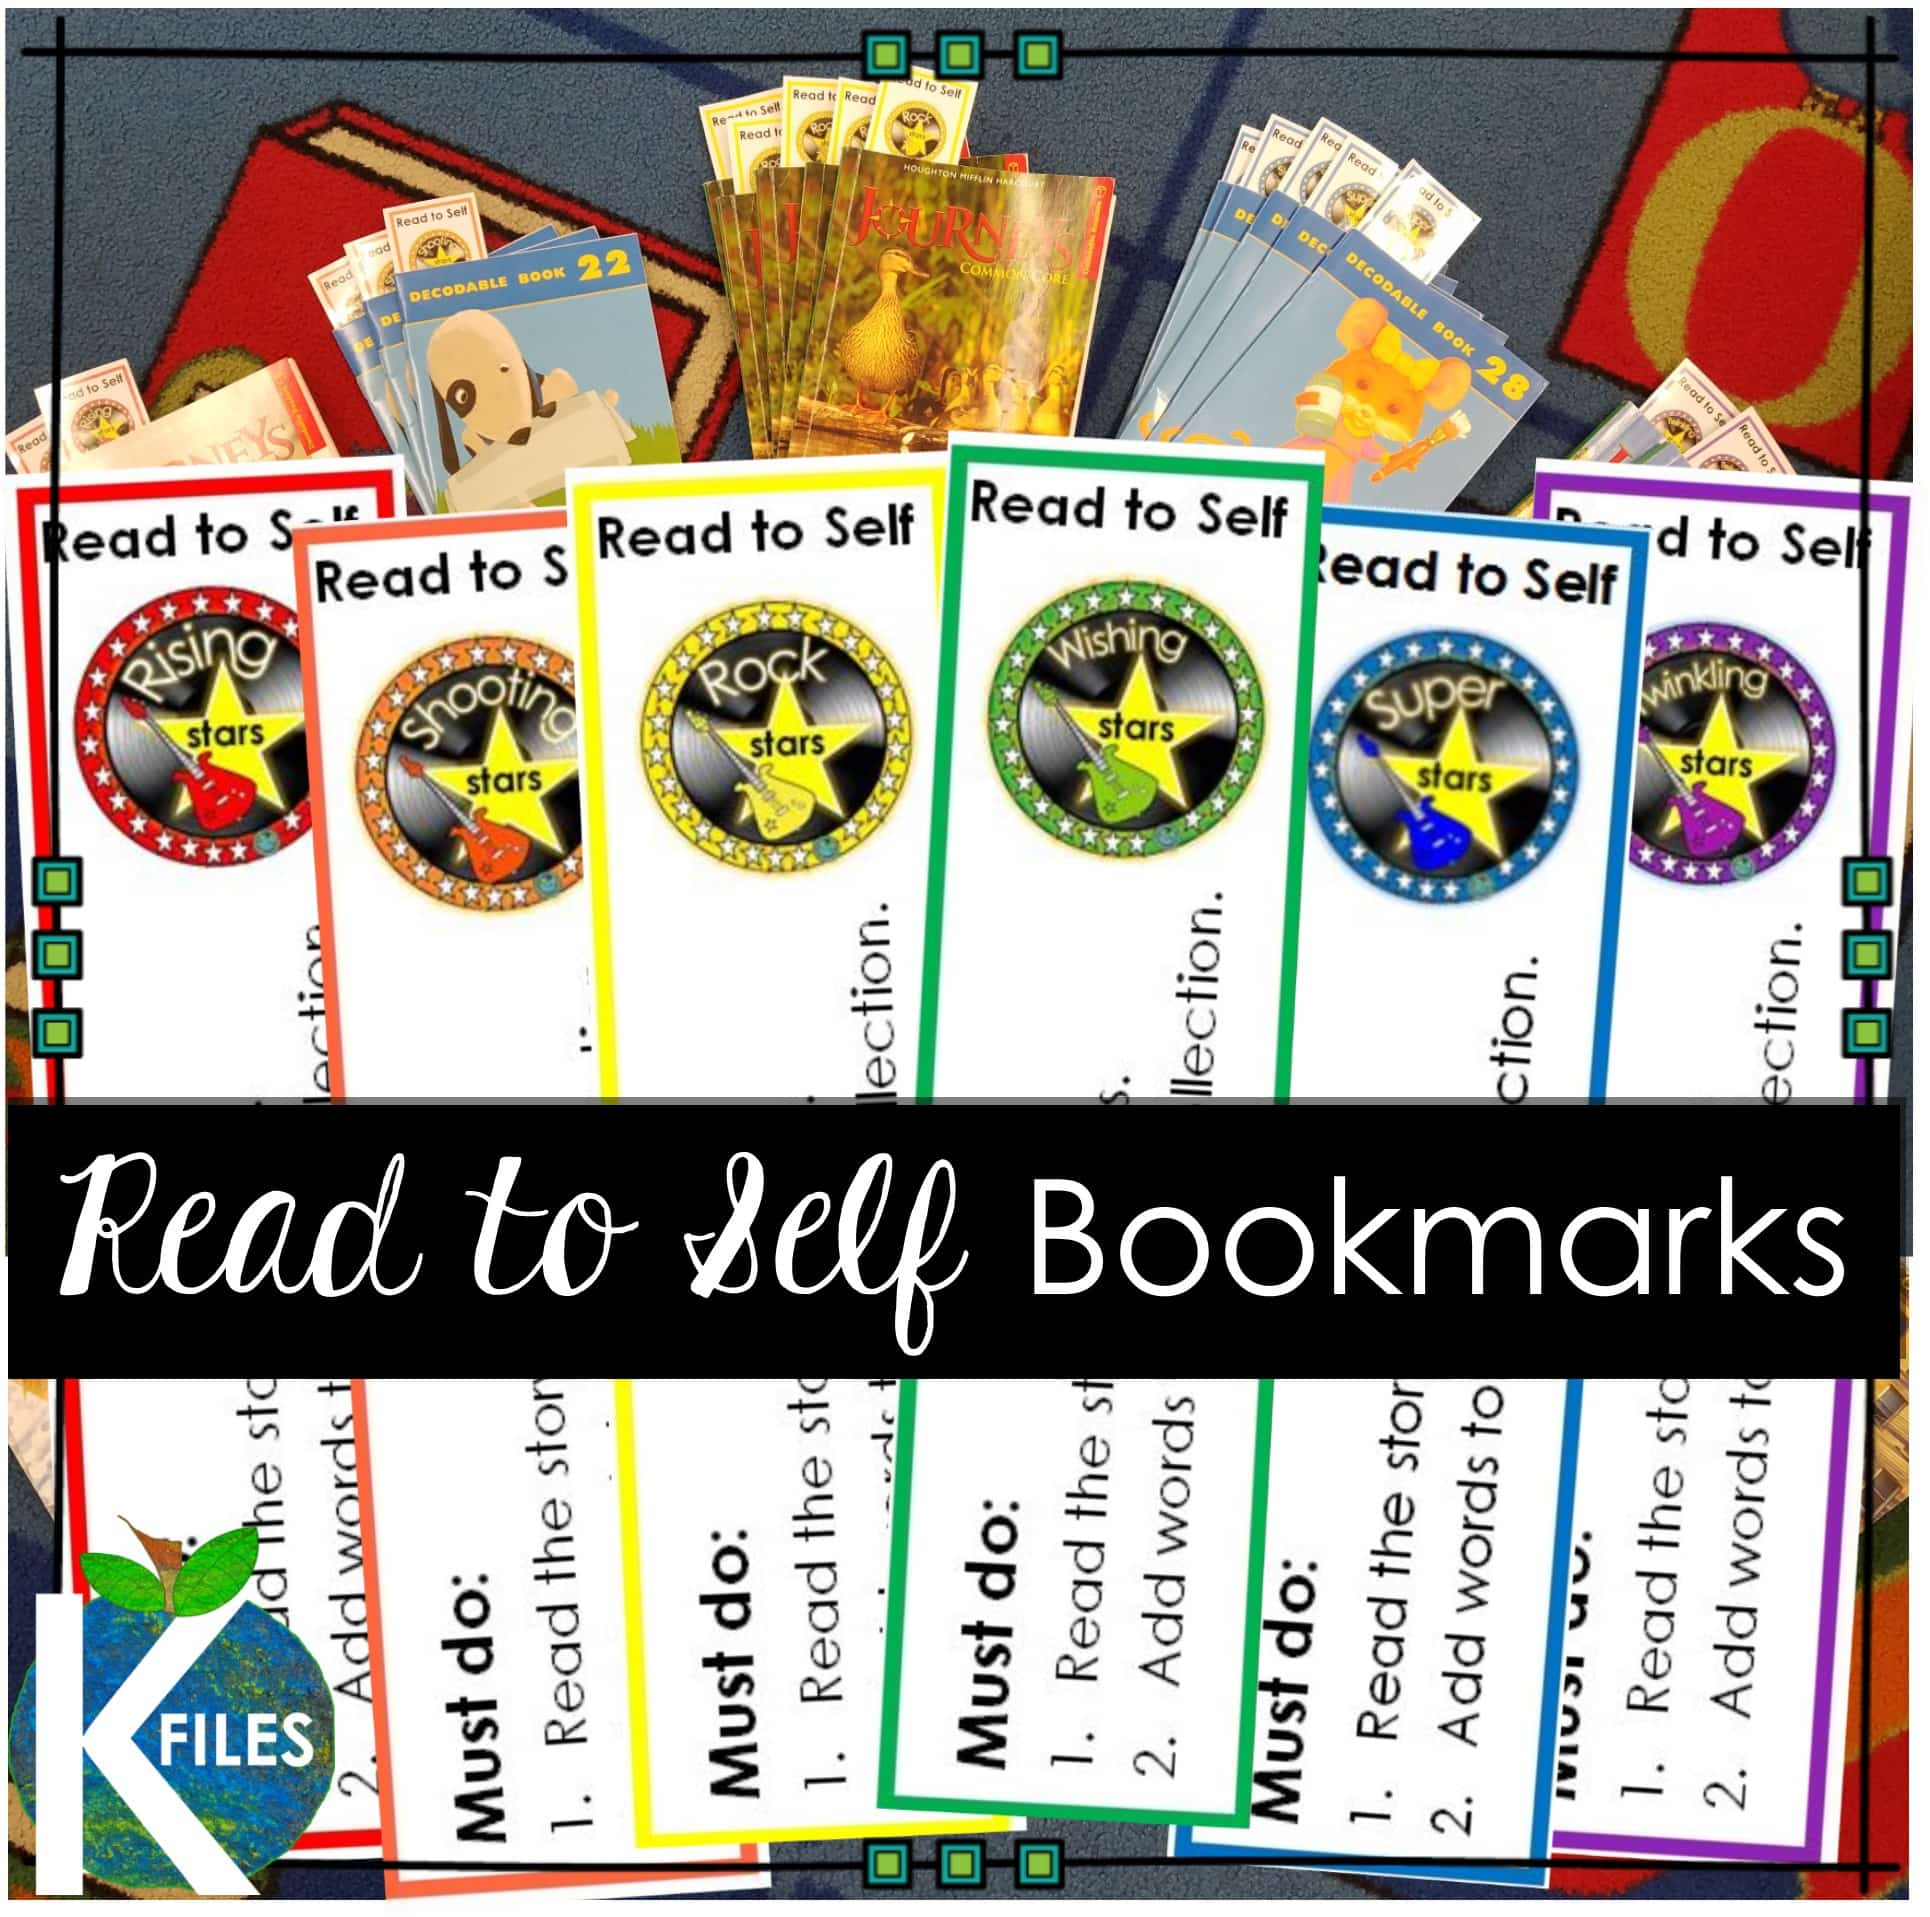 "Read to Self Bookmarks: In addition to my students' Word Work during our Daily 5, one of their ""Must Do"" items is to Read to Self. During this time the children are assigned a story to read from one of our decodable readers that reinforces their Word Study Goal. This is a great classroom management tool that will support your implementation of Words Their Way in your phonics and spelling teaching program."